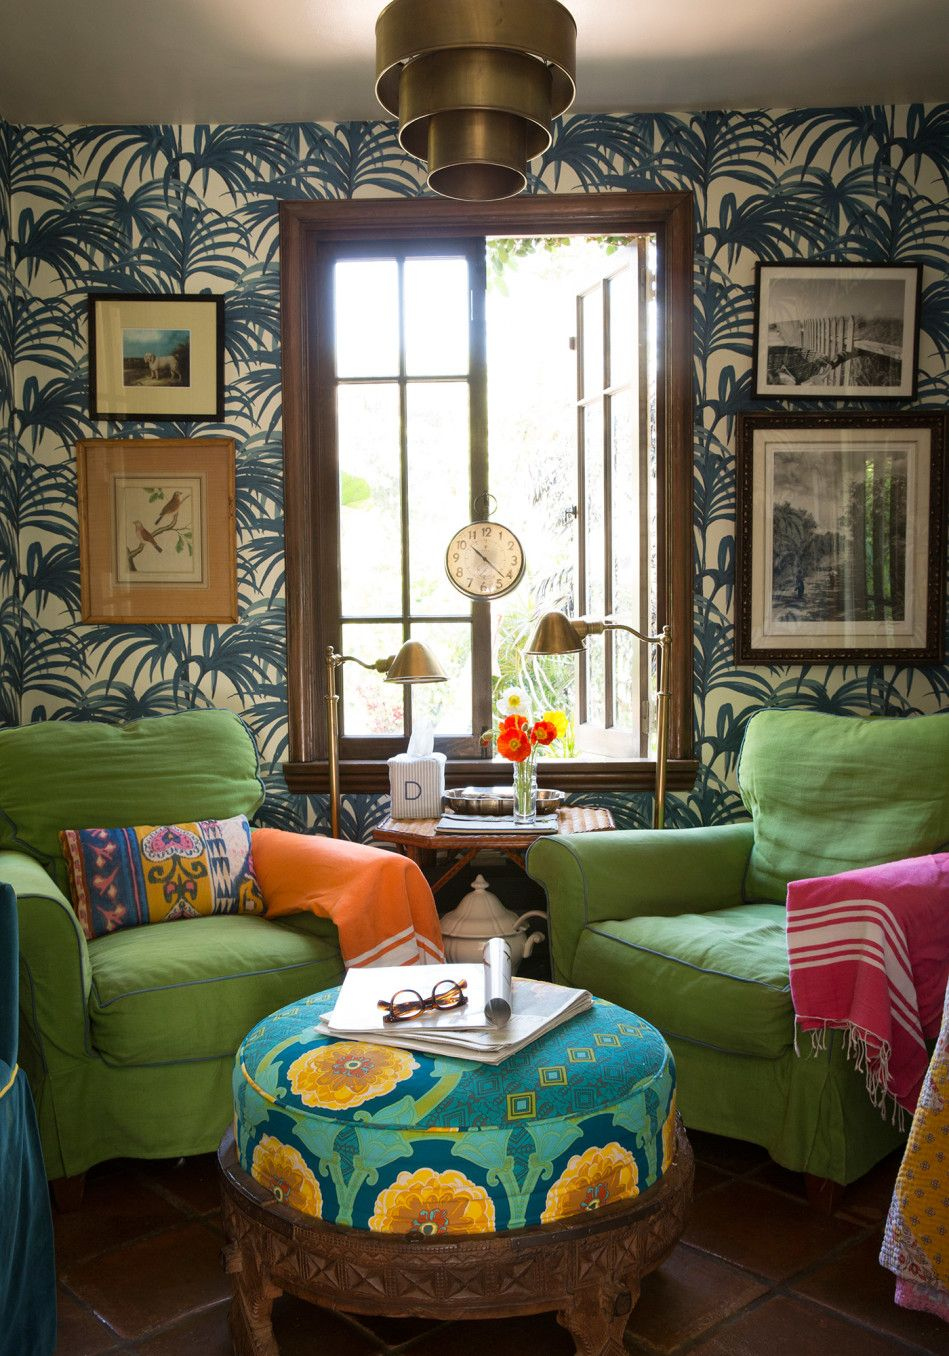 Best 8 Ways To Make A Small Room Look Bigger Small Living 400 x 300